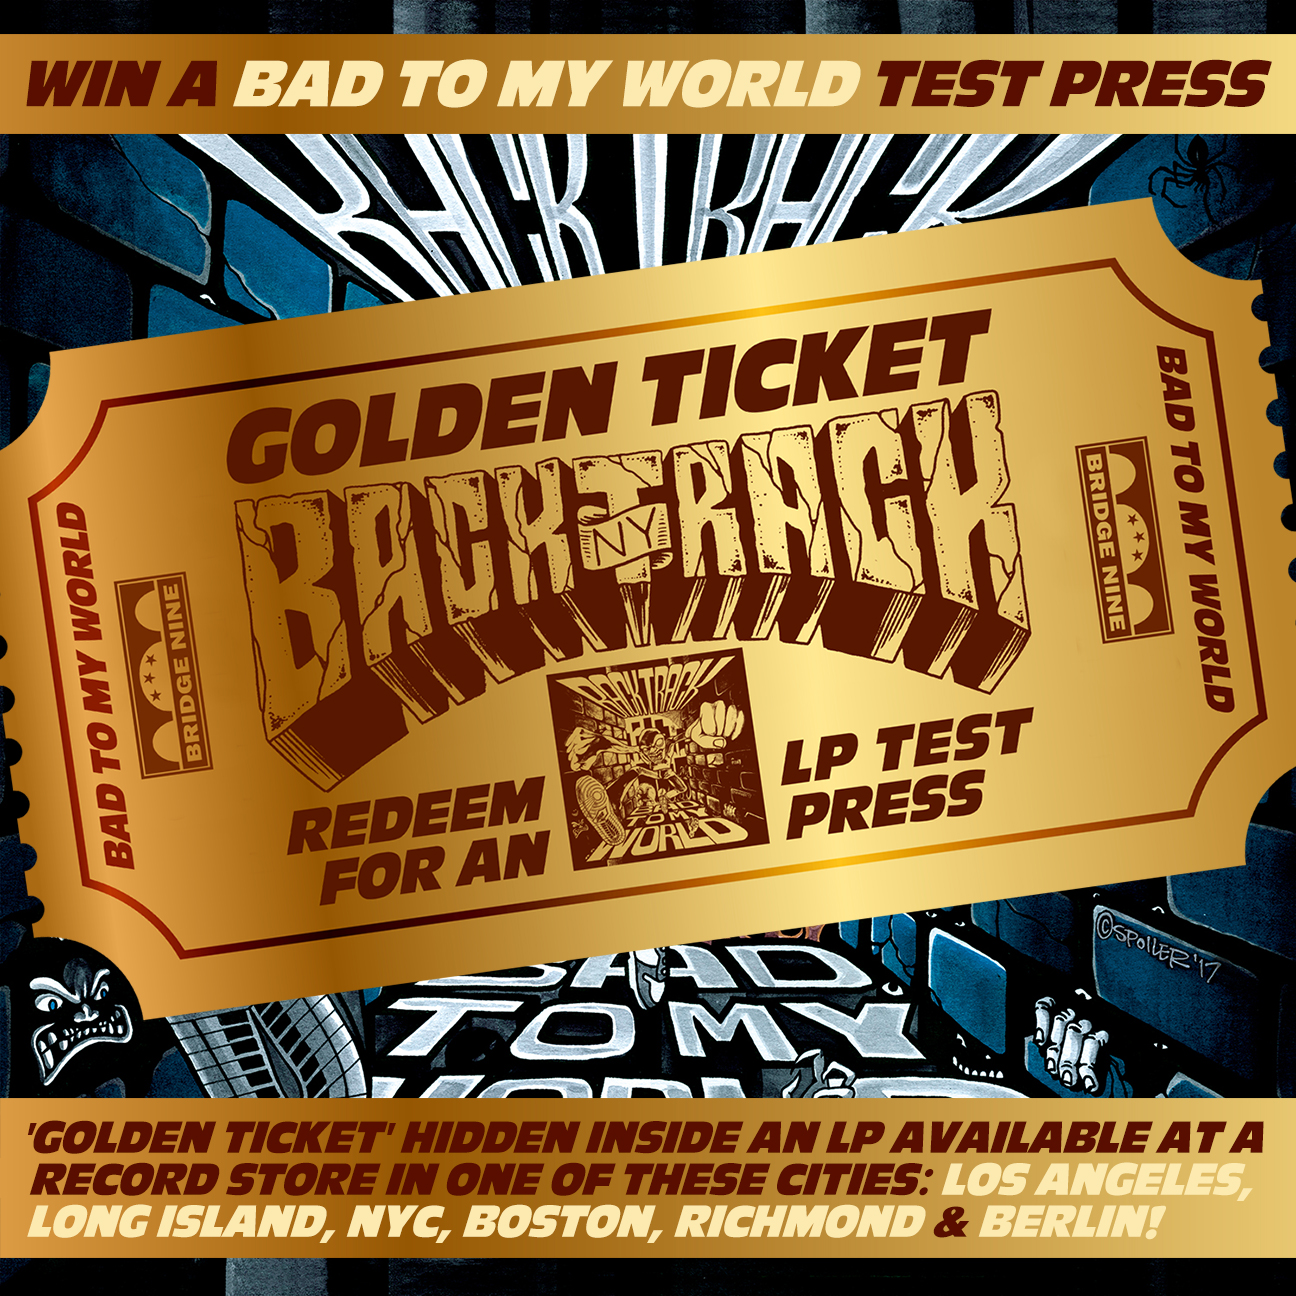 B9R250_GoldenTicket_Promo_Image_18x18_updated_01.jpg